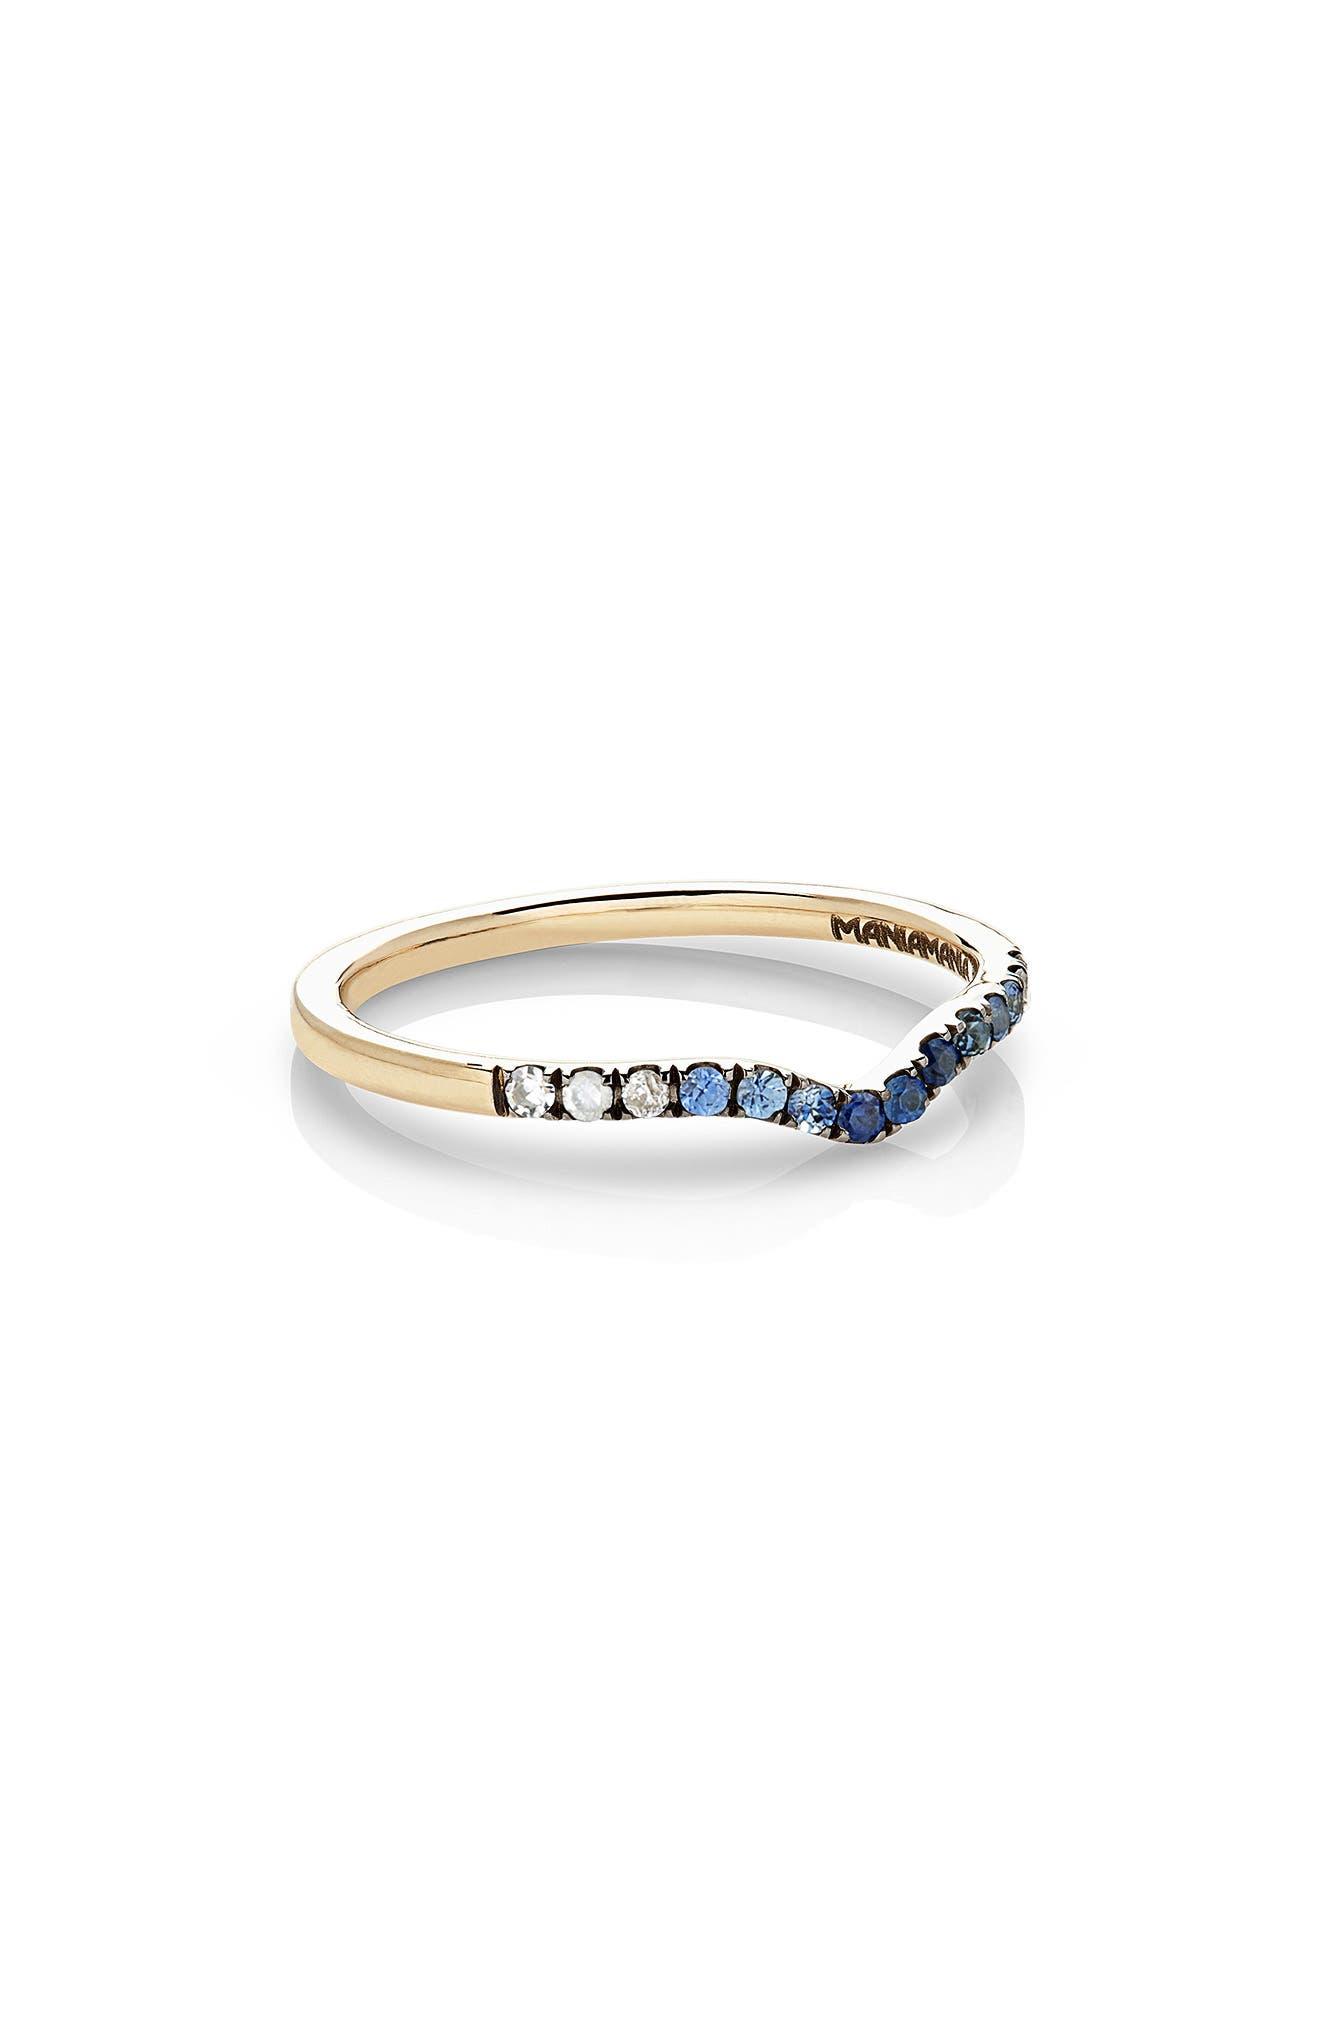 Unity Gradient Sapphire Band Ring,                         Main,                         color, Blue Sapphire/ Yellow Gold